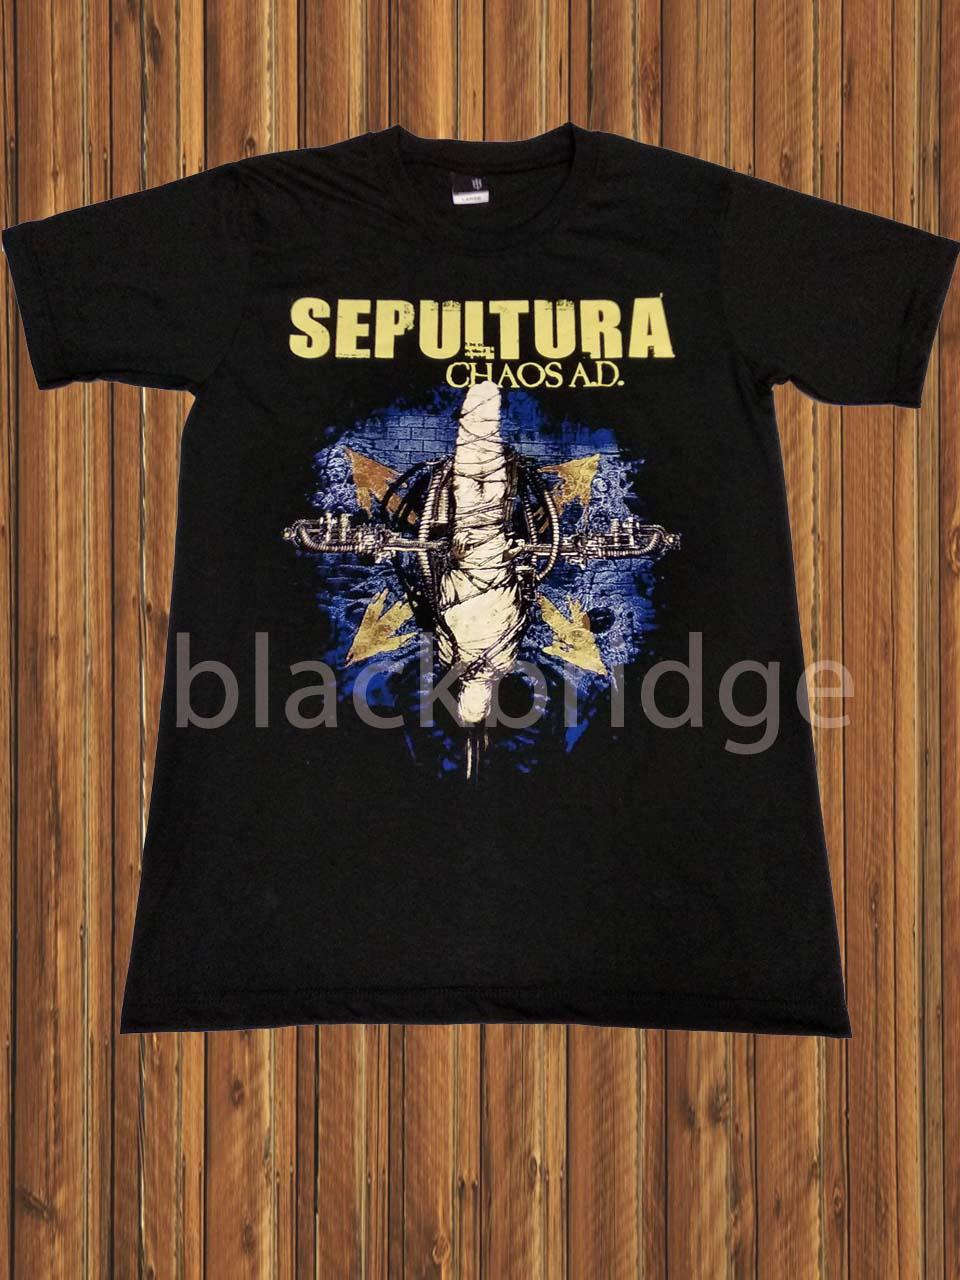 Kaos Pendek / Oblong Band Rock / Metal / Punk PRAPATAN REBEL Murah (Size L) - SEPULTURA